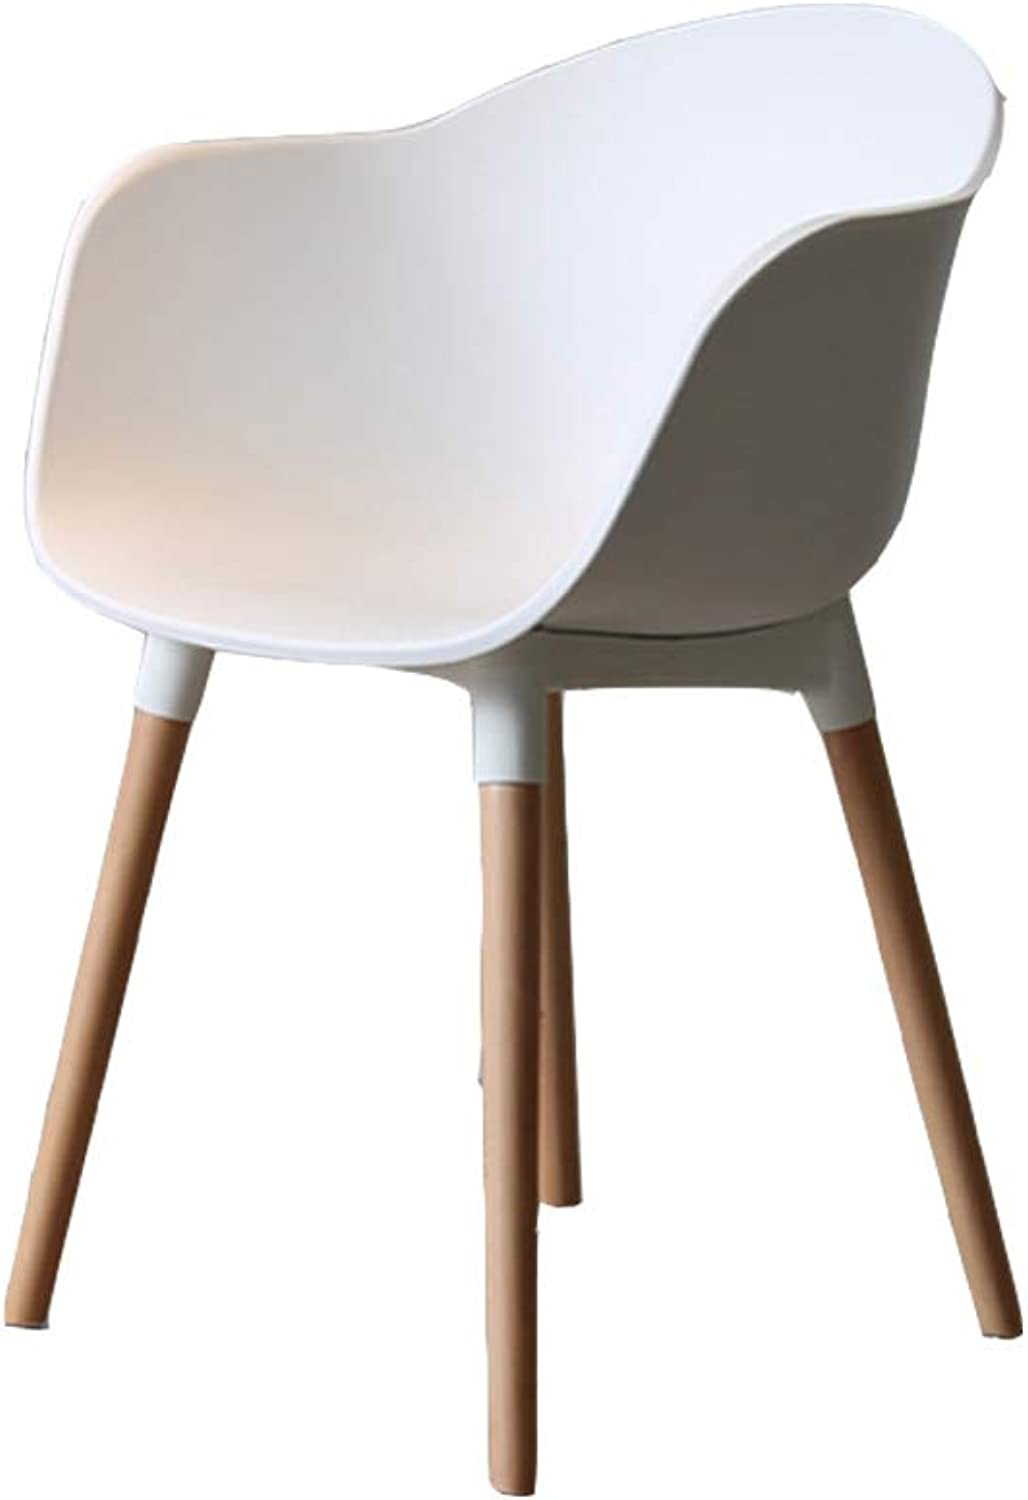 Bar Stools Chair 18.5inches Height with Back and Armrest (color   White)